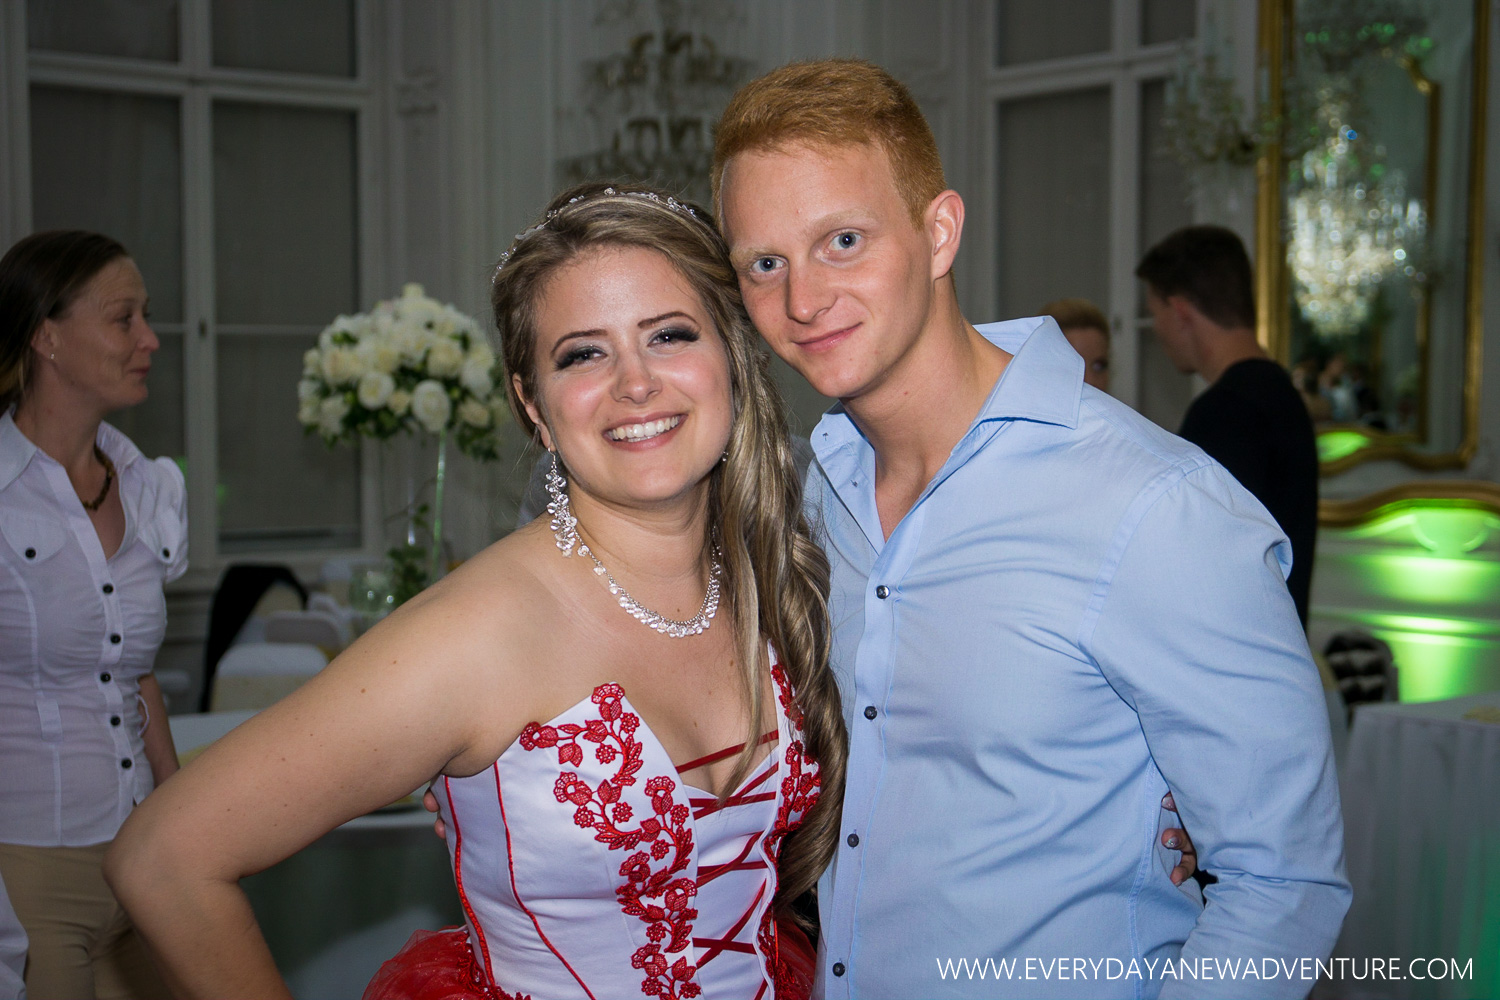 [SqSp1500-116] Budapest - Inez and Arni's Wedding!-699.jpg